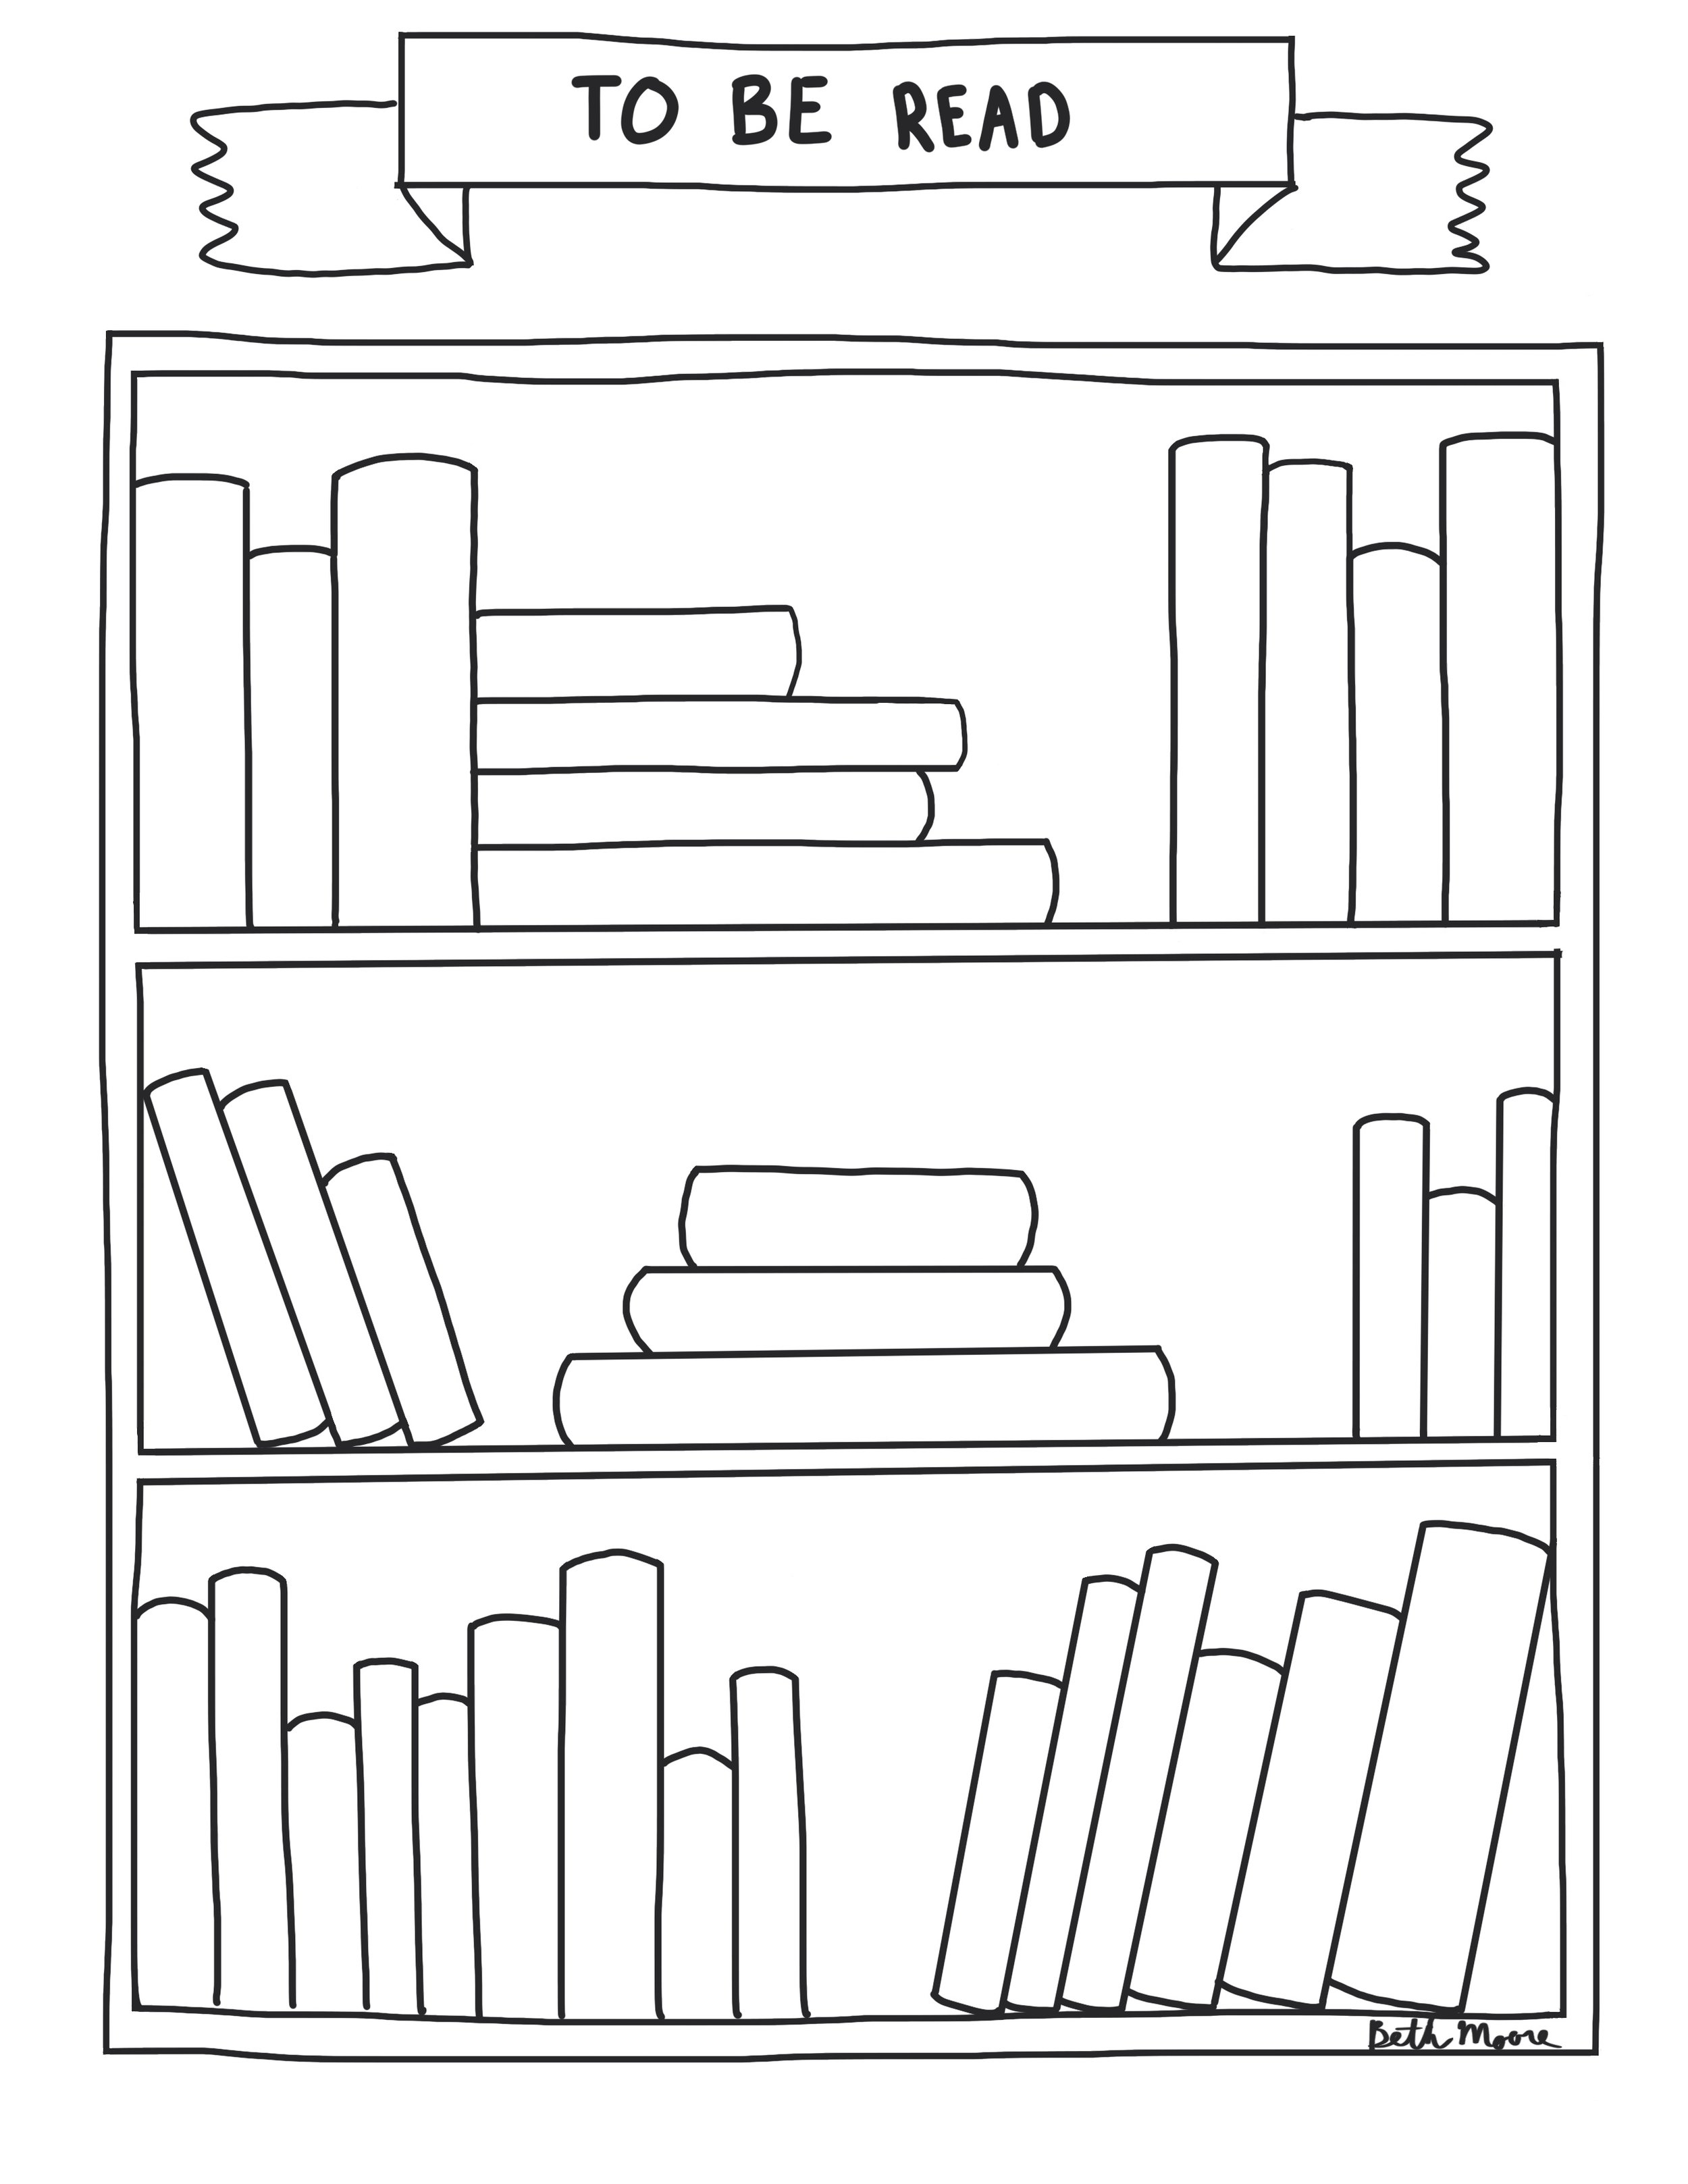 To Be Read Bookshelf - A visual display of books the reader plans to read. Readers can color in the spines as they finish each book, or keep a separate book log or finished books list.